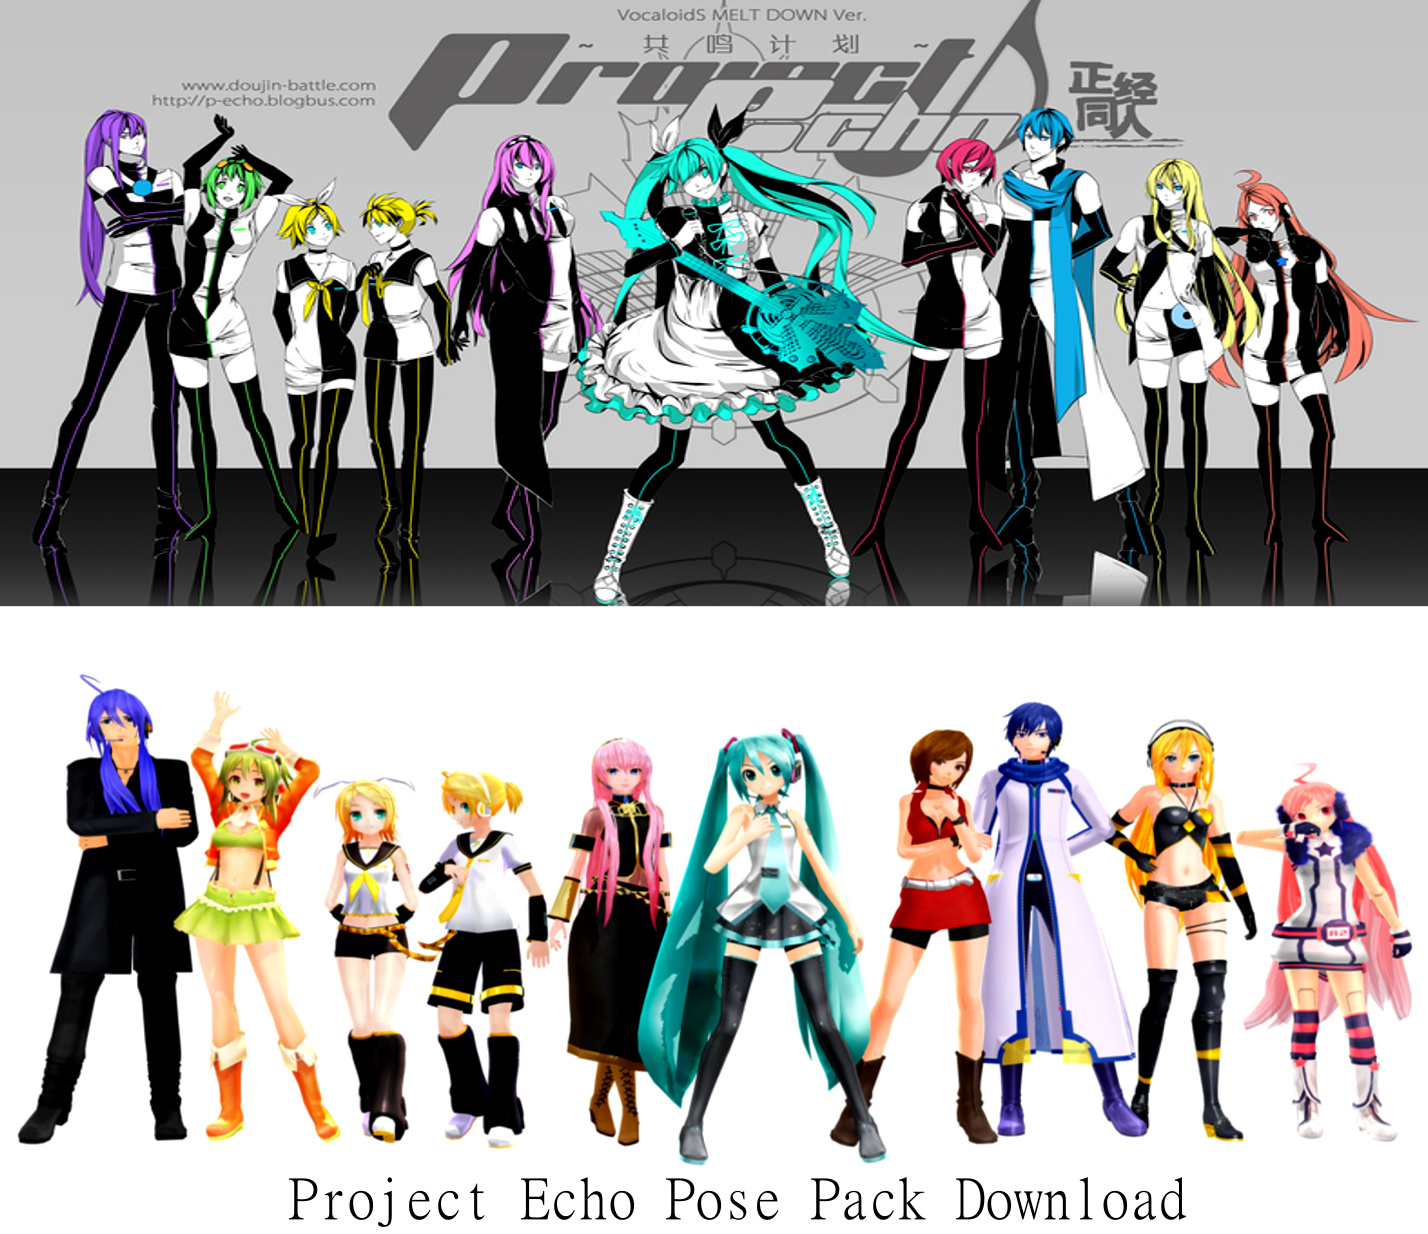 Project Echo Pose Pack MMD Download By Reon046 On DeviantArt